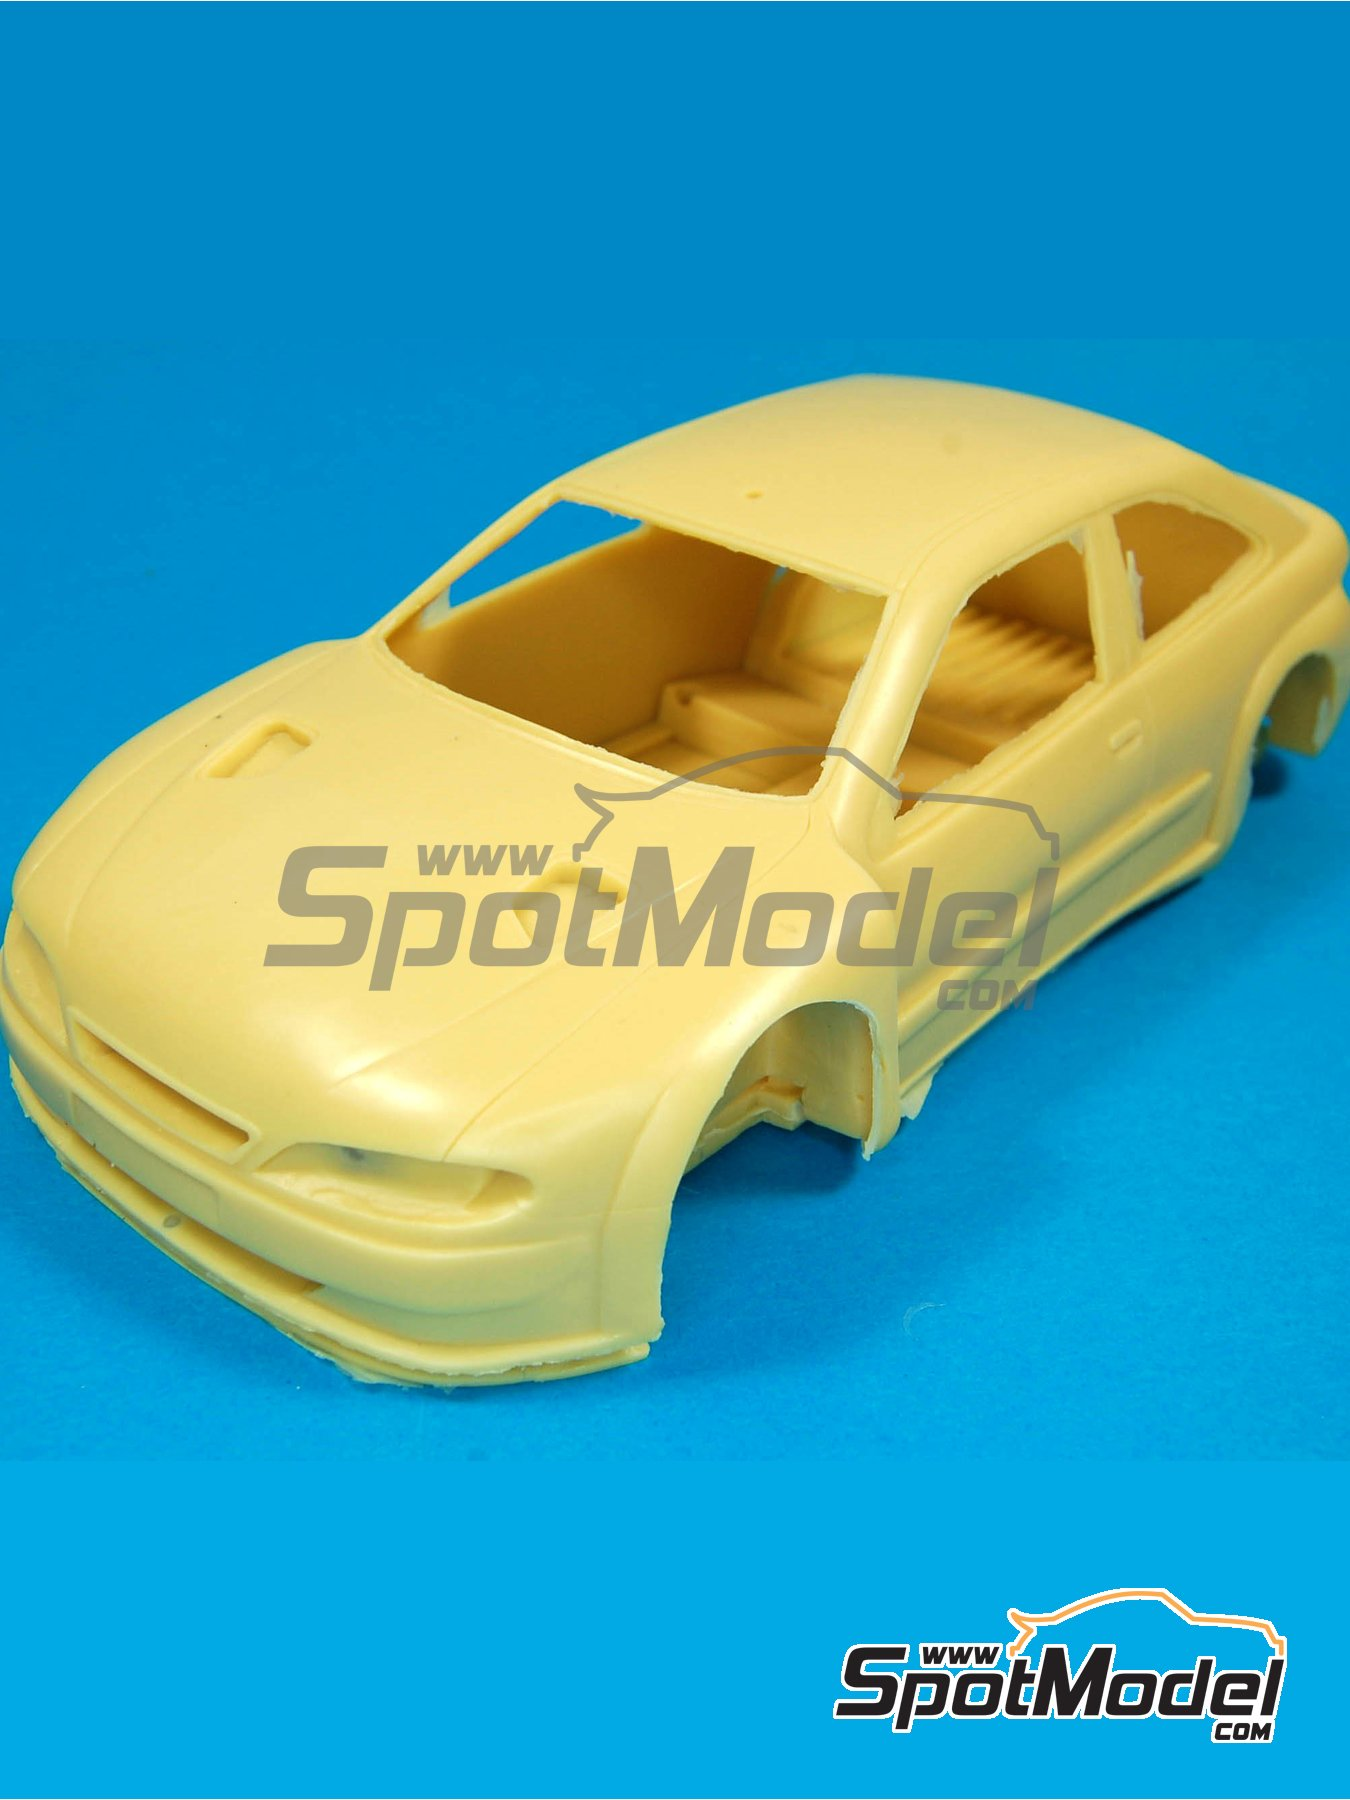 Citroen Xsara Kit-car | Bodywork in 1/24 scale manufactured by Renaissance Models (ref. CTR2405-BODY) image